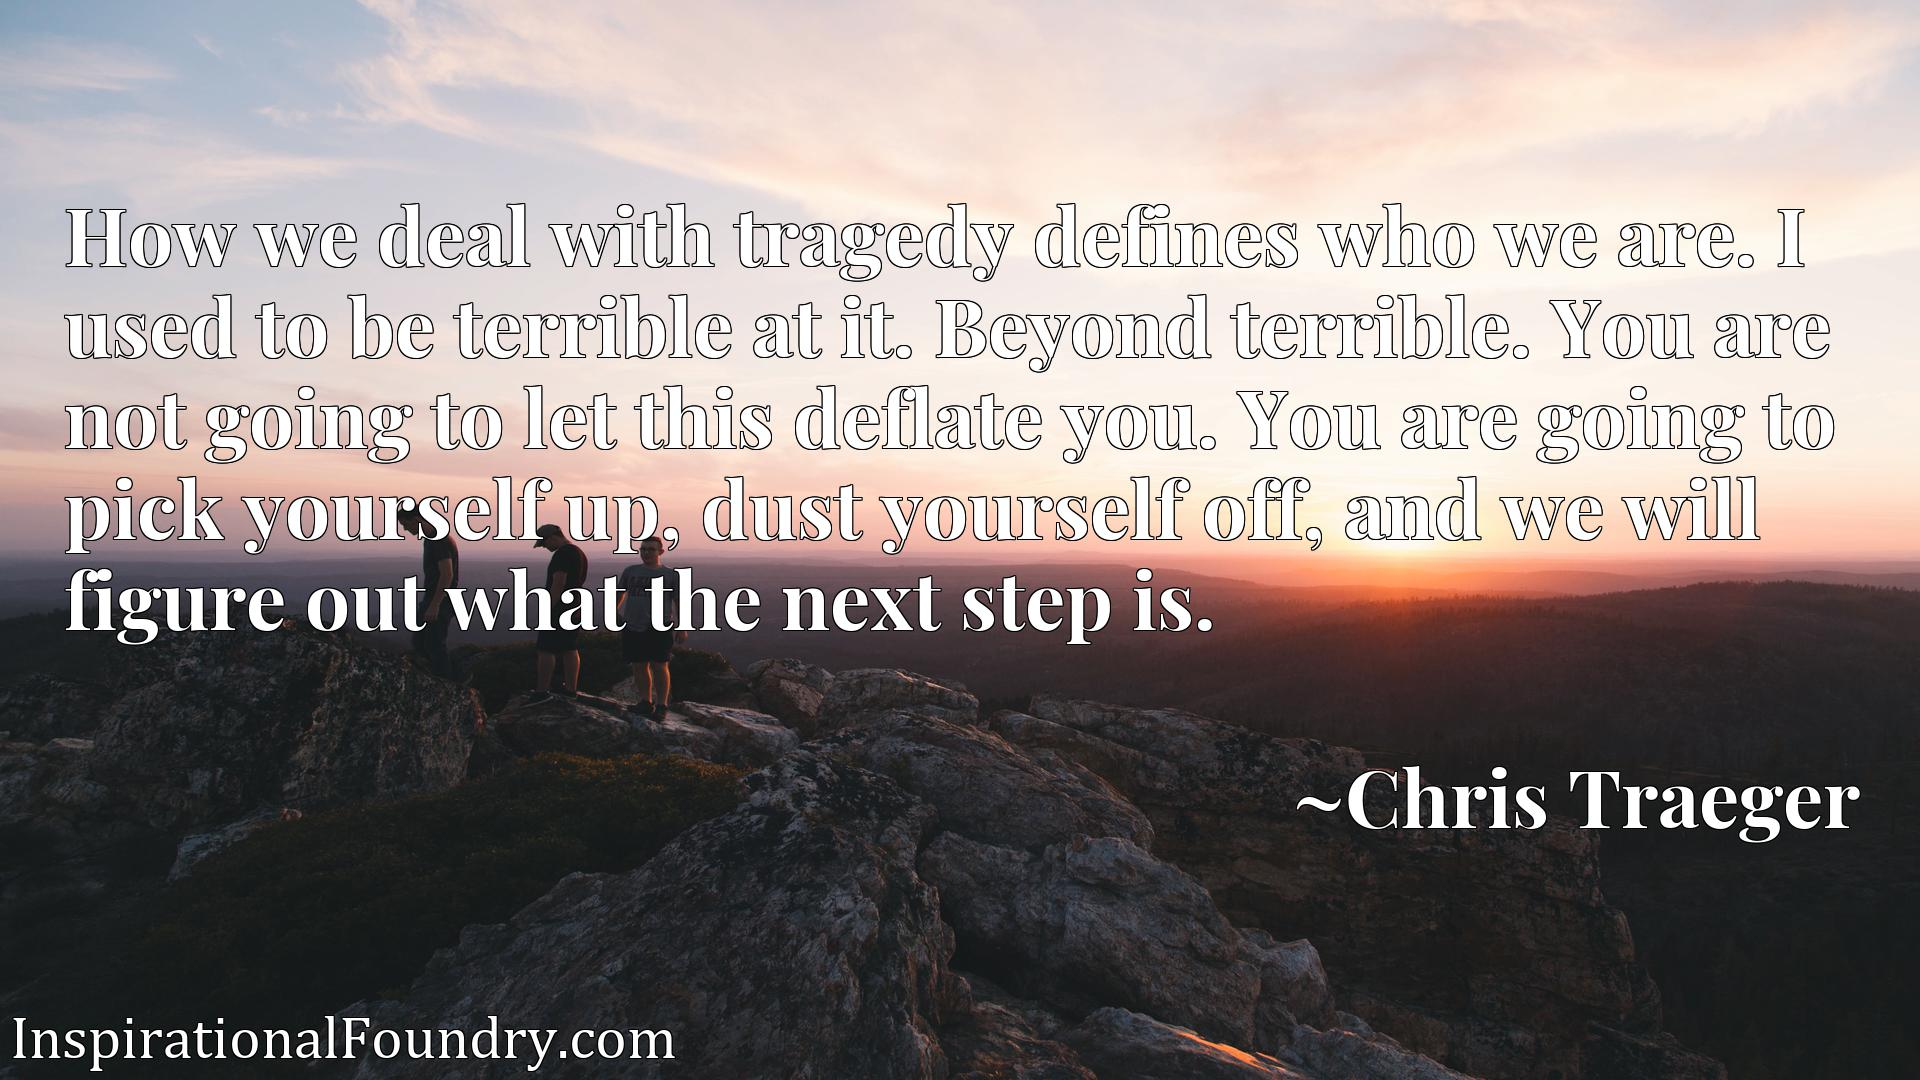 How we deal with tragedy defines who we are. I used to be terrible at it. Beyond terrible. You are not going to let this deflate you. You are going to pick yourself up, dust yourself off, and we will figure out what the next step is.